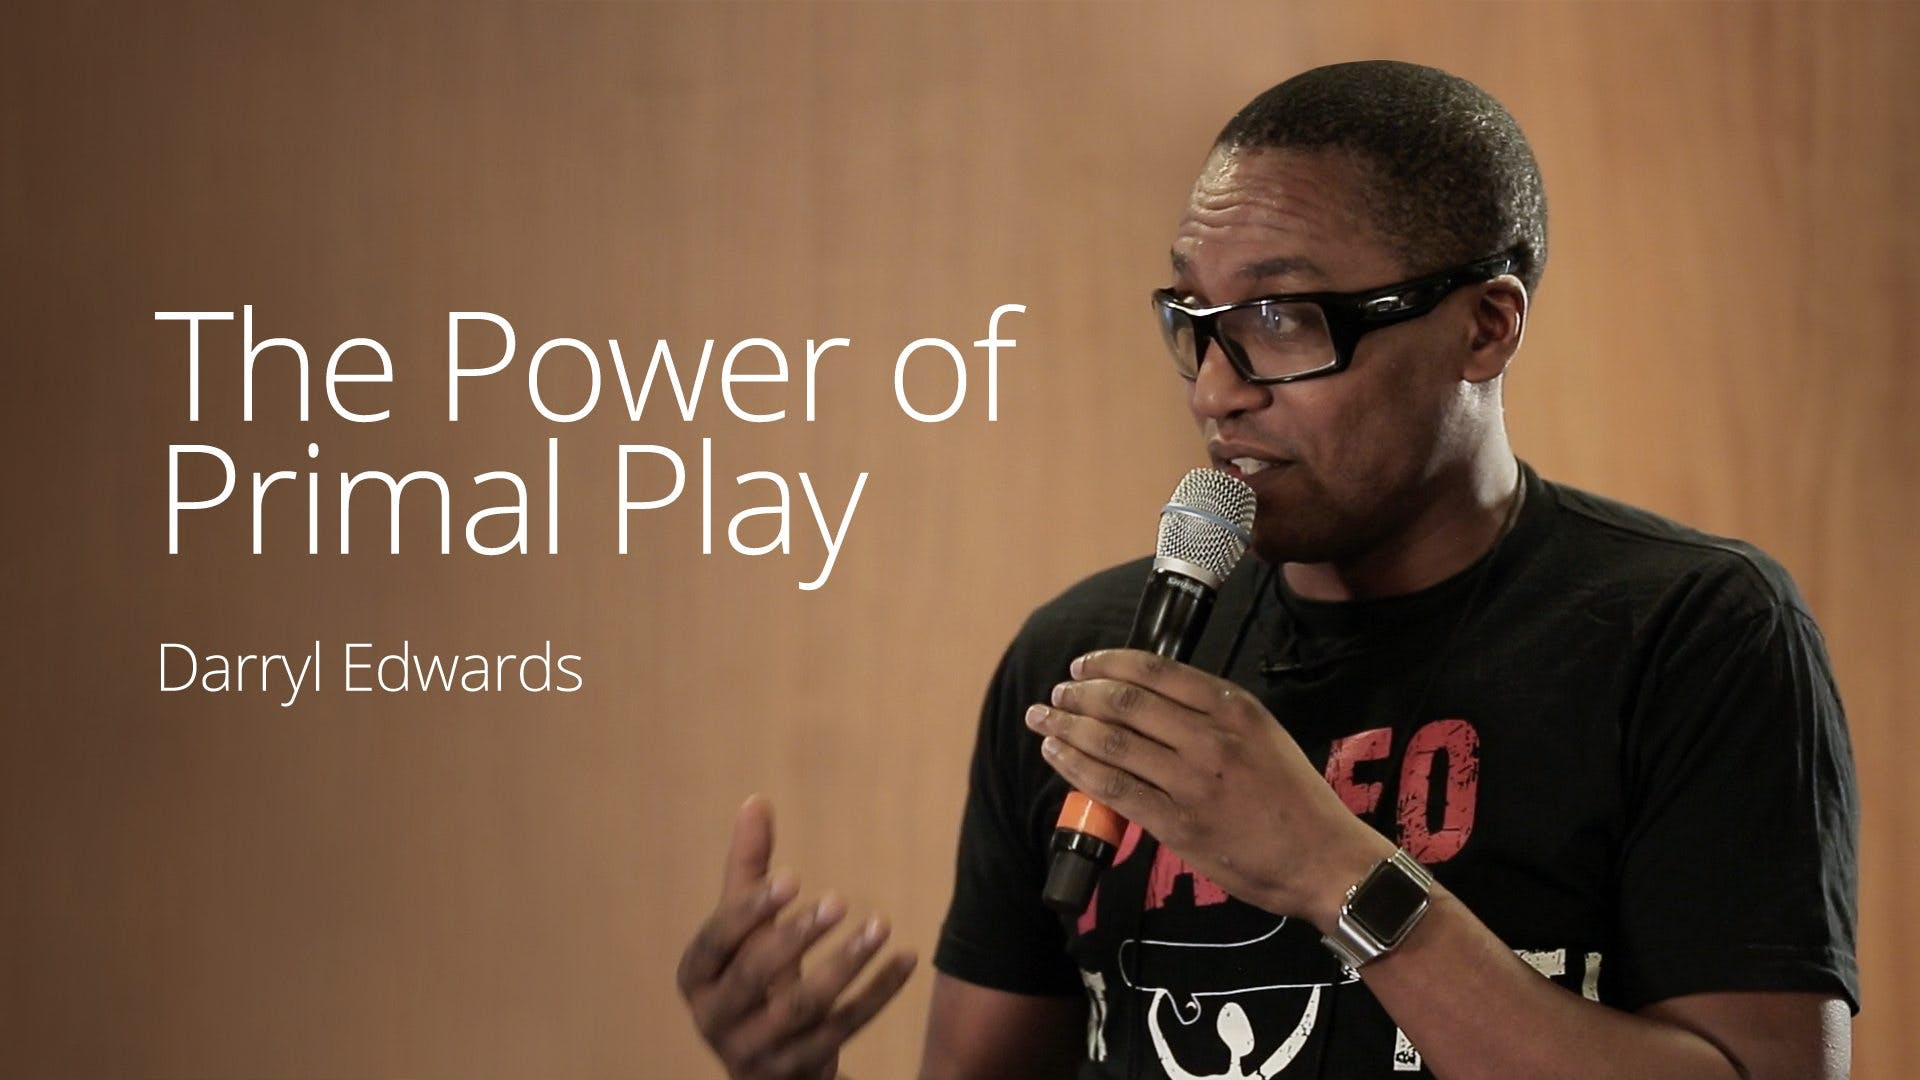 The power of primal play